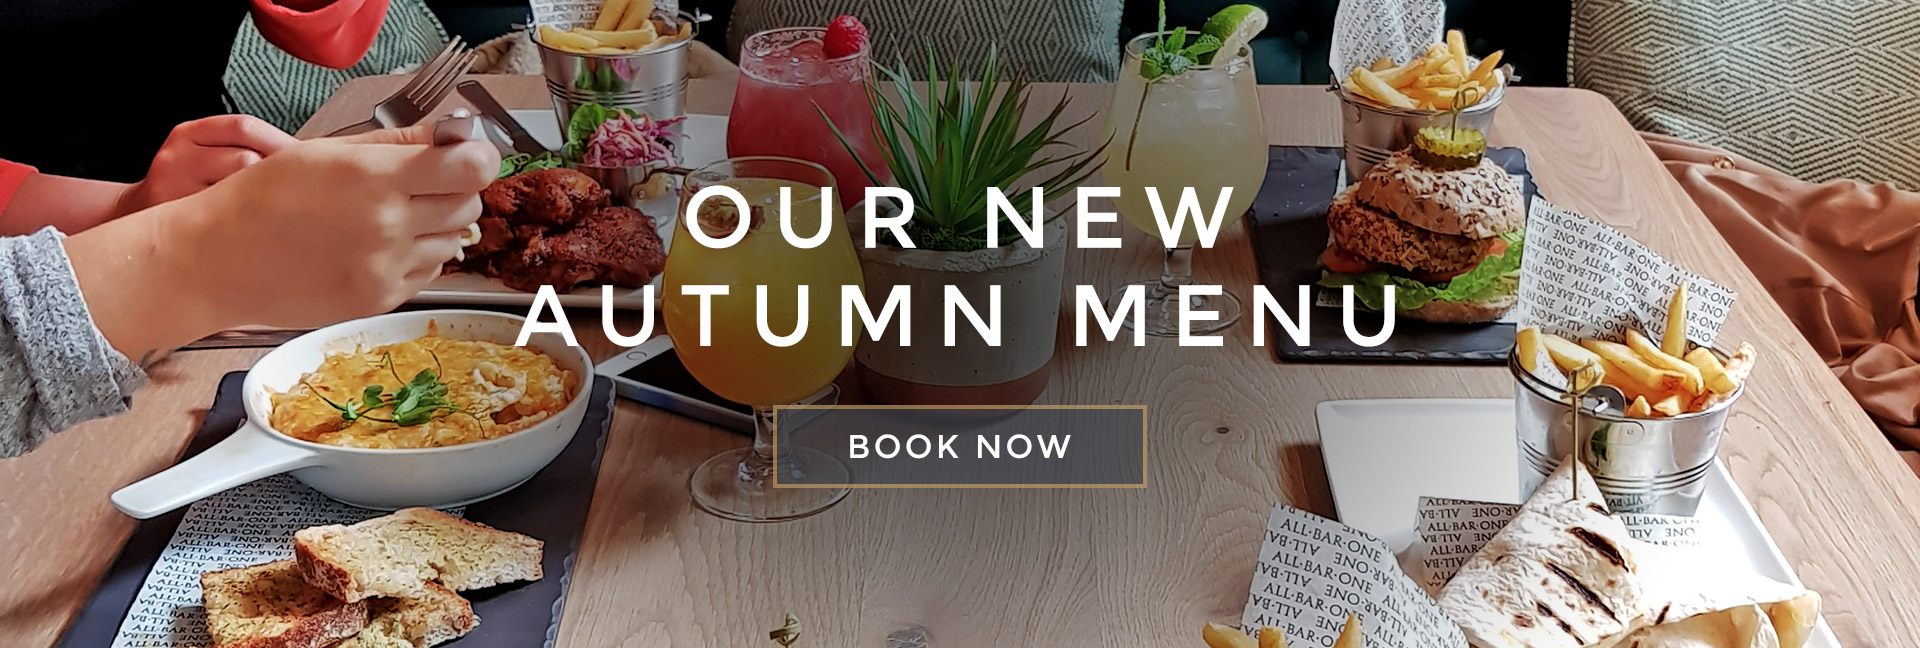 Our new Autumn menu at All Bar One Liverpool - Book now